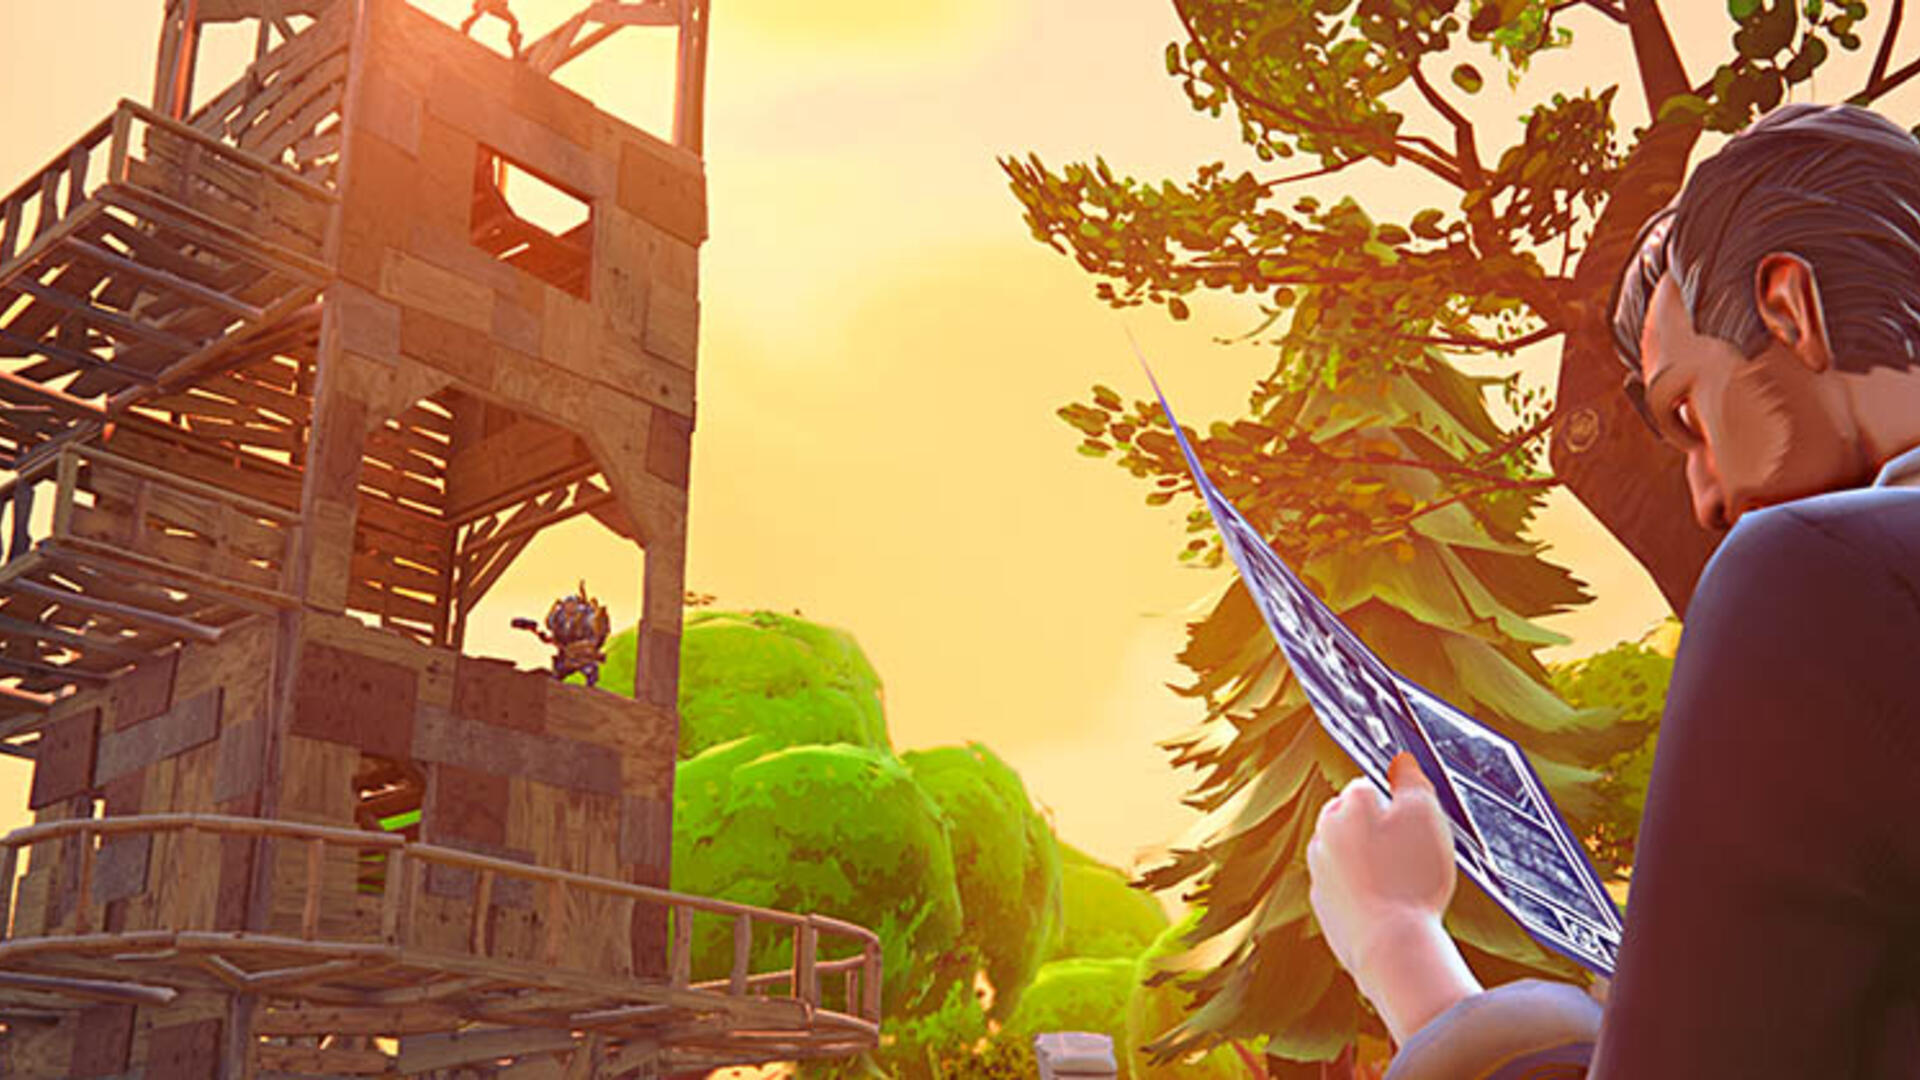 Fortnite's 2.5.0 Update Includes New Weapons, New Quests, and a Free Outfit for PS Plus Members